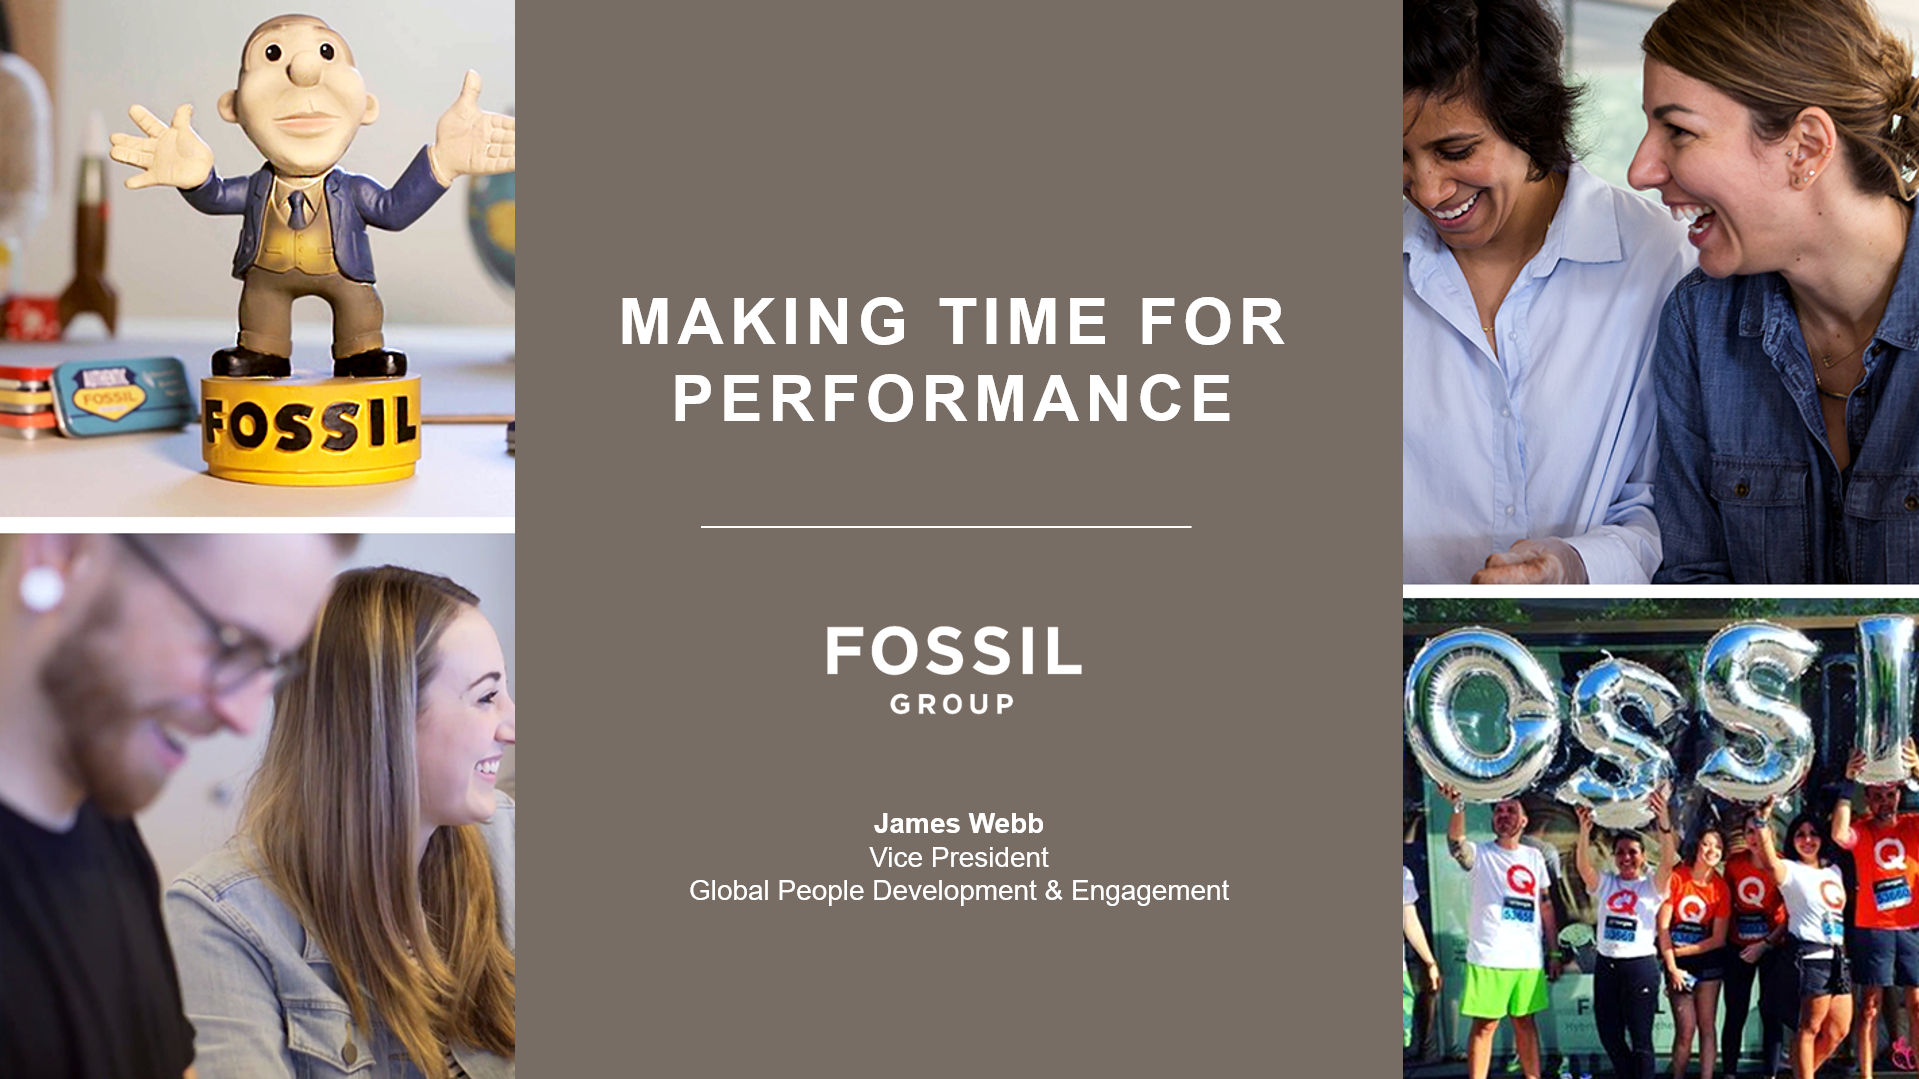 Making-Time-for-Performance-Fossil-Presentation.png